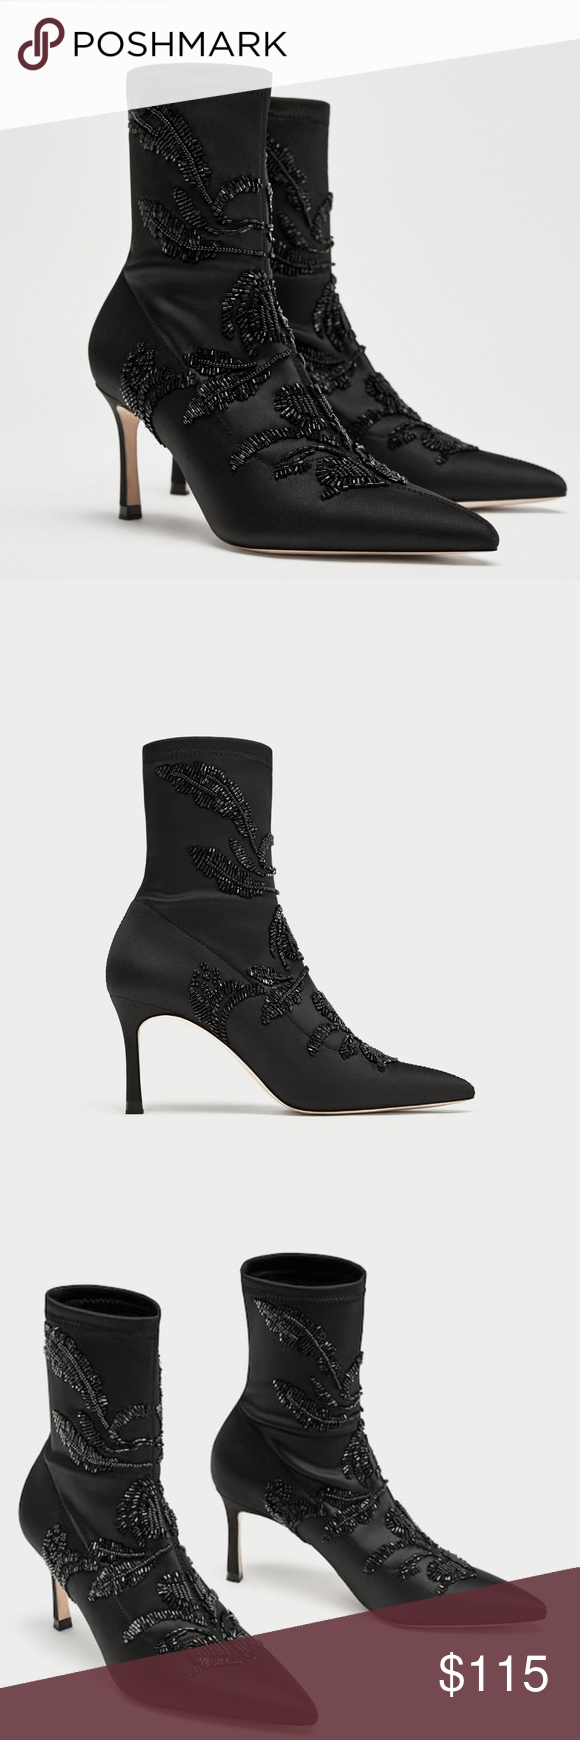 62d5022f798 Zara embroidered satin high heel ankle boots Black satin high-heeled ankle  boots. Embroidered beading detail on the upper. Stiletto heels. Pointed  toes.